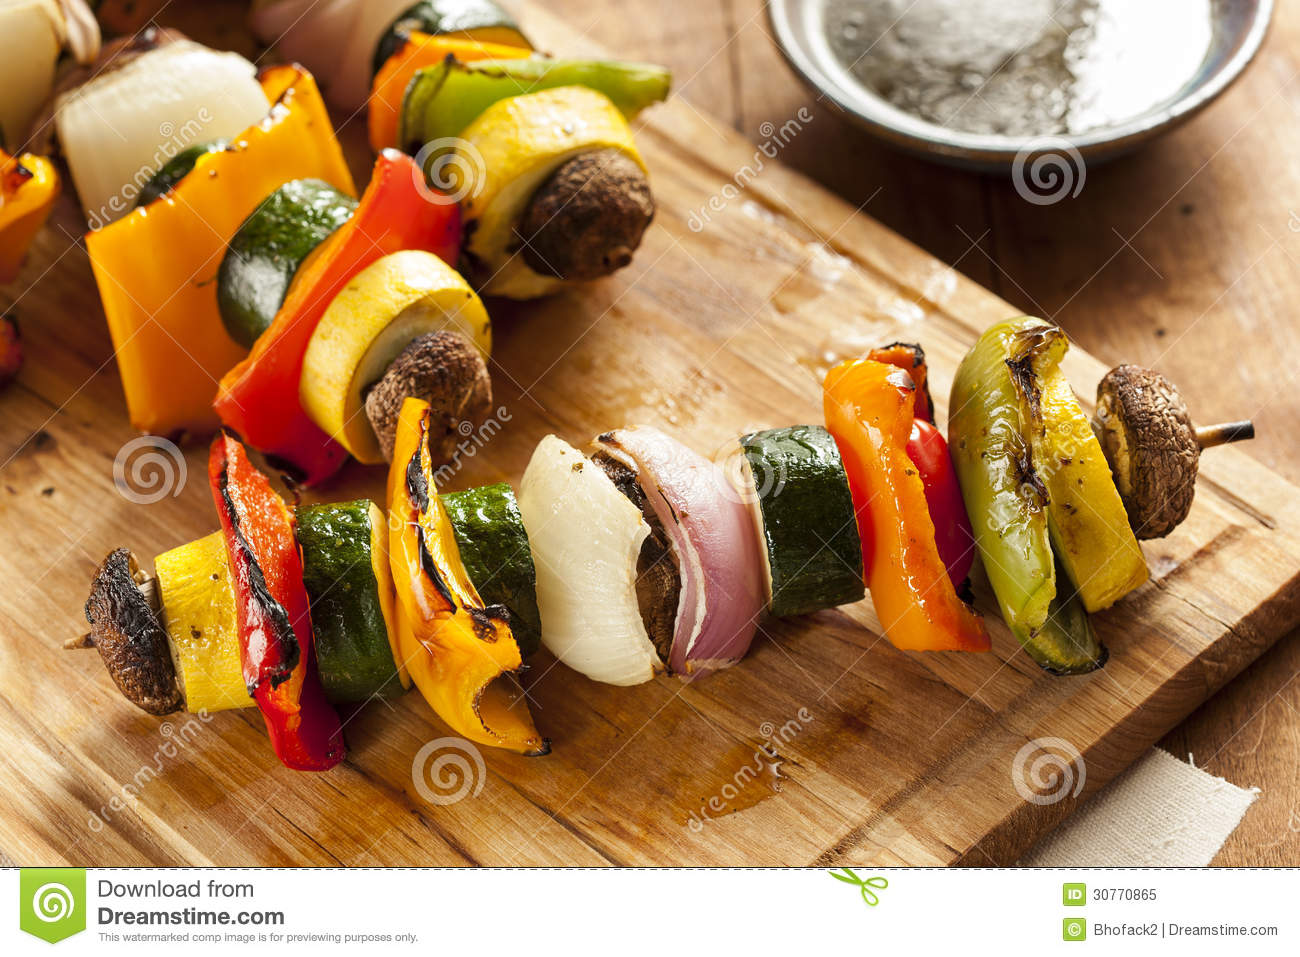 How to cook a delicious vegetable shish kebab